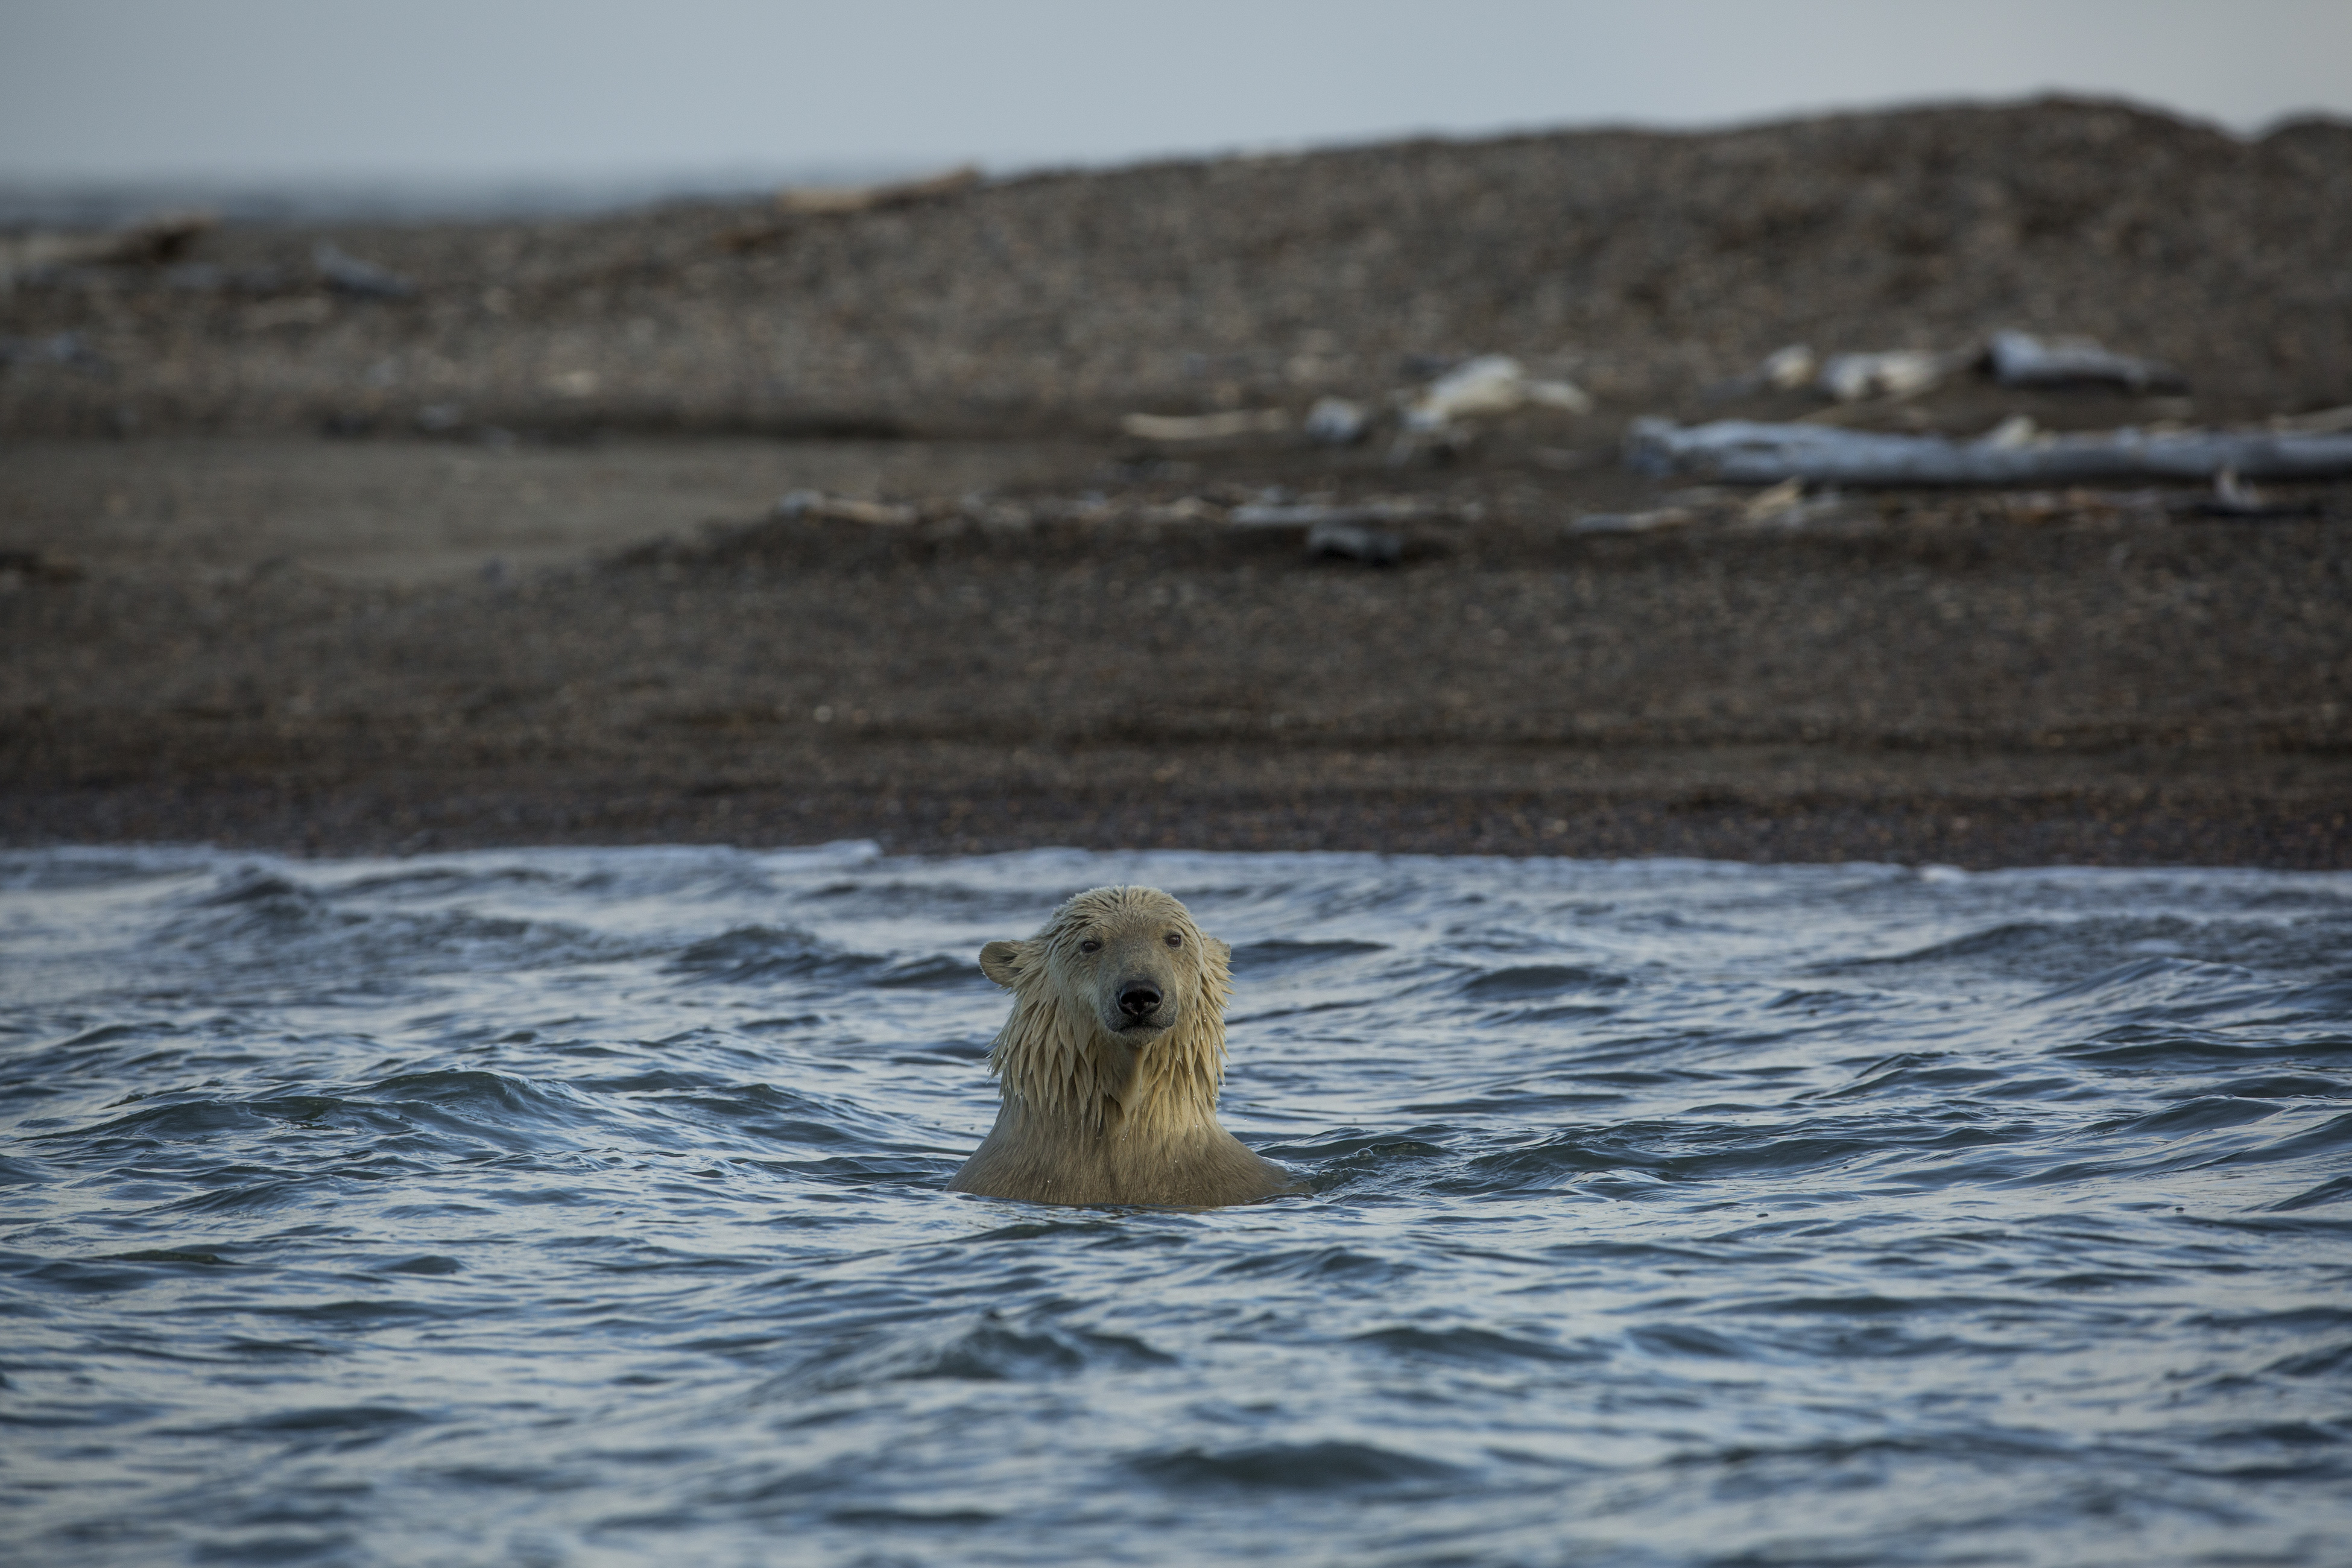 A polar bear swims in the waters off Kaktovik, Alaska, Sept. 11, 2016. Polar bears roam the town during the fall as climate refugees, on land because the sea ice they rely on for hunting seals is receding. (Josh Haner/The New York Times)